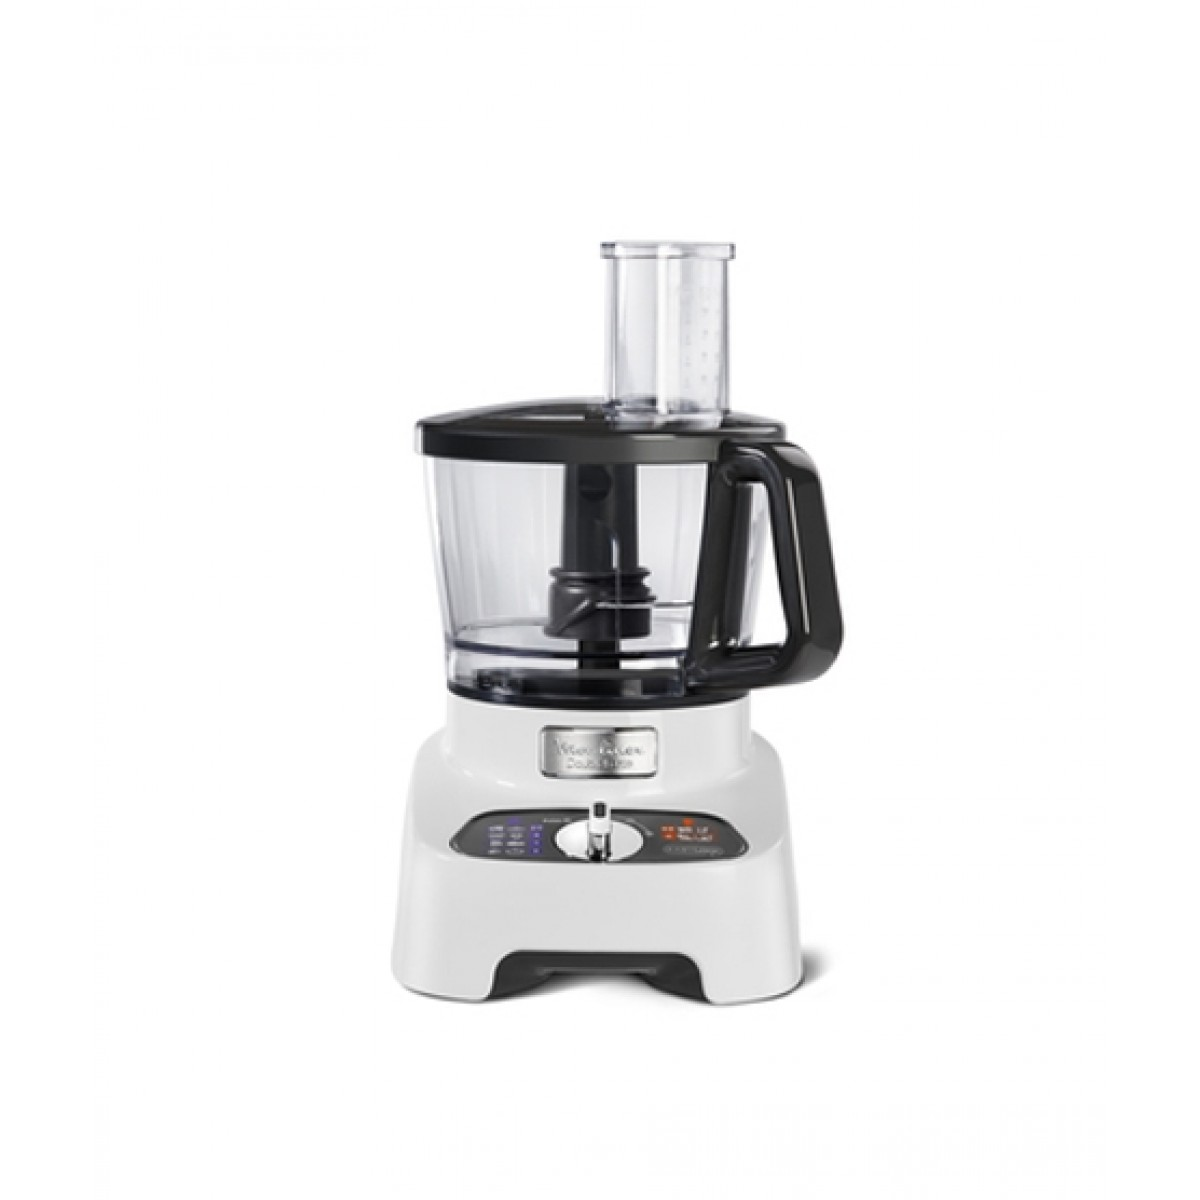 Moulinex Double Force Food Processor (FP-8221)